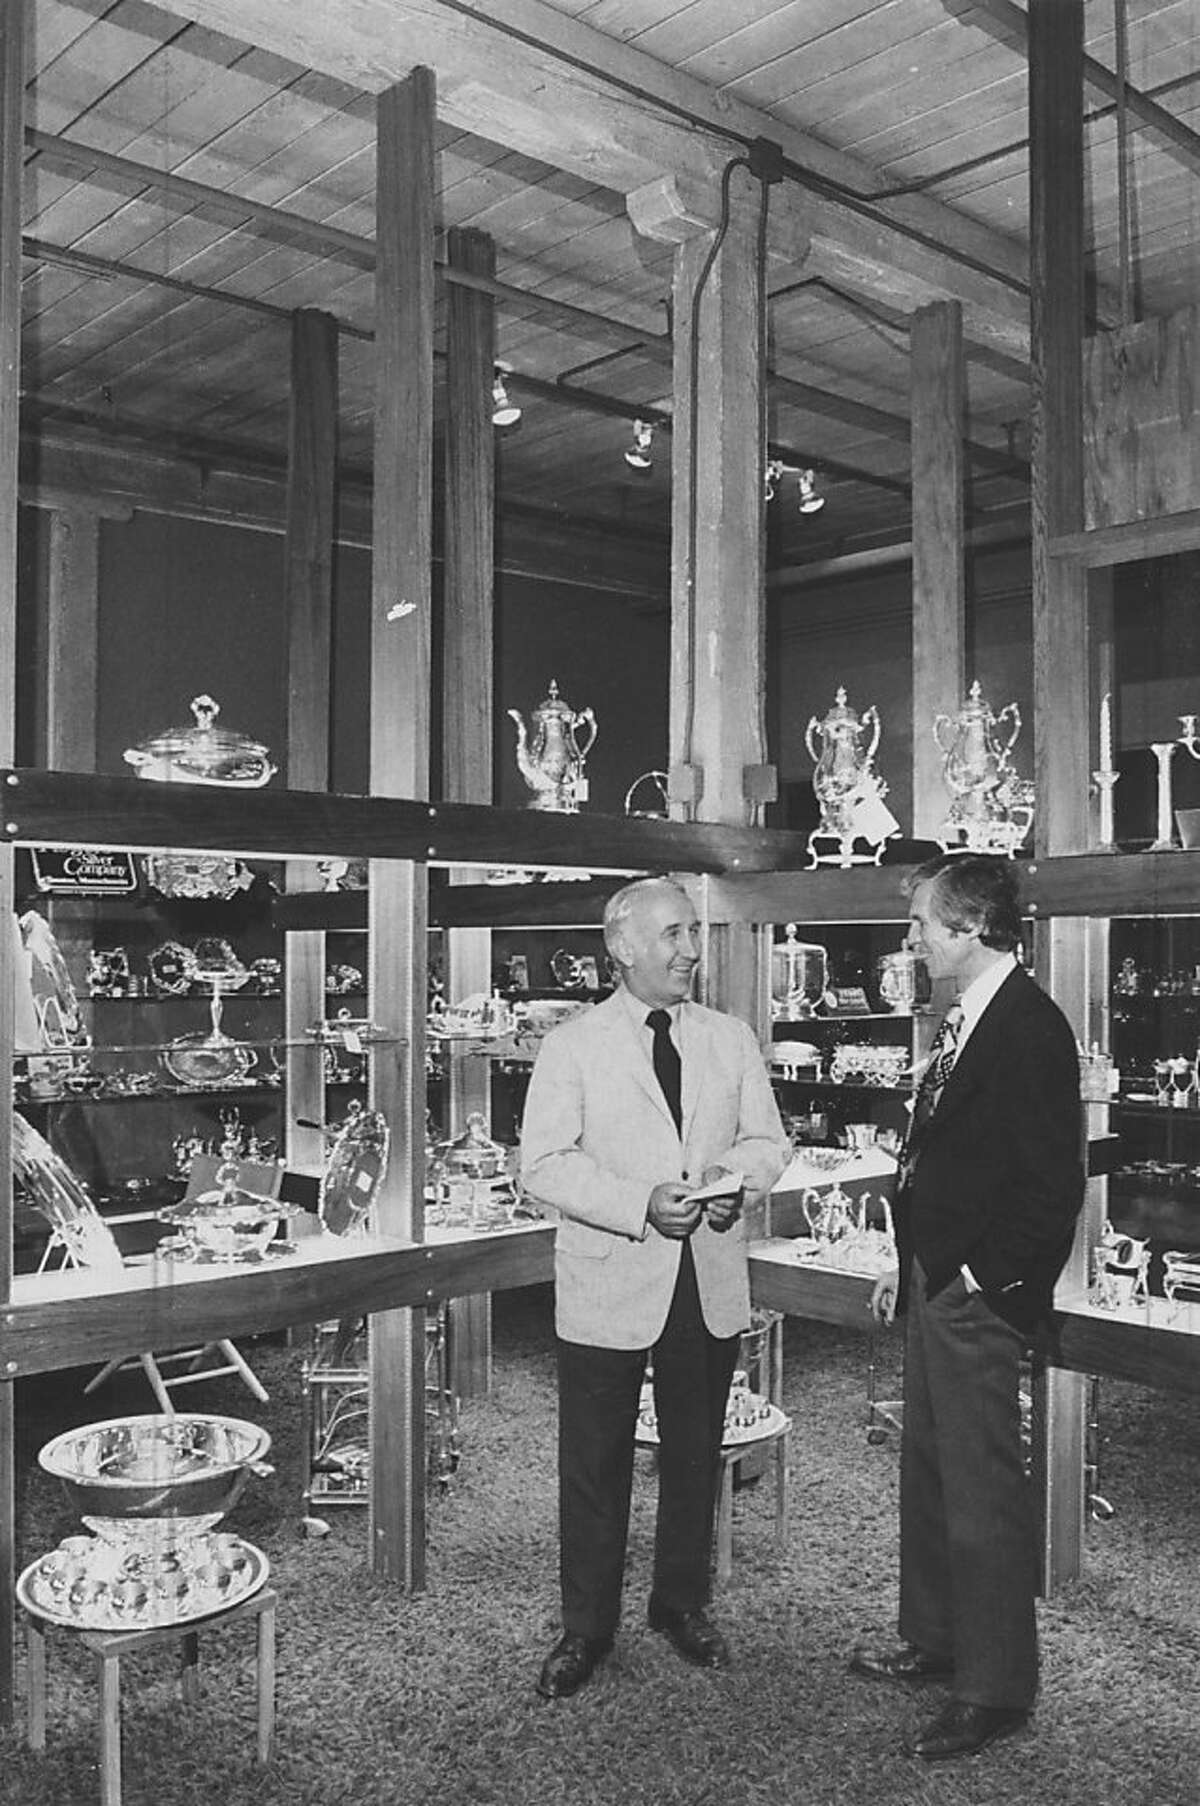 Henry Adams (left) of The Showplace with Robert Zinkhon, at a showroom featuring a silverware manufacturer's collection. Photo was taken: 09/15/1972.